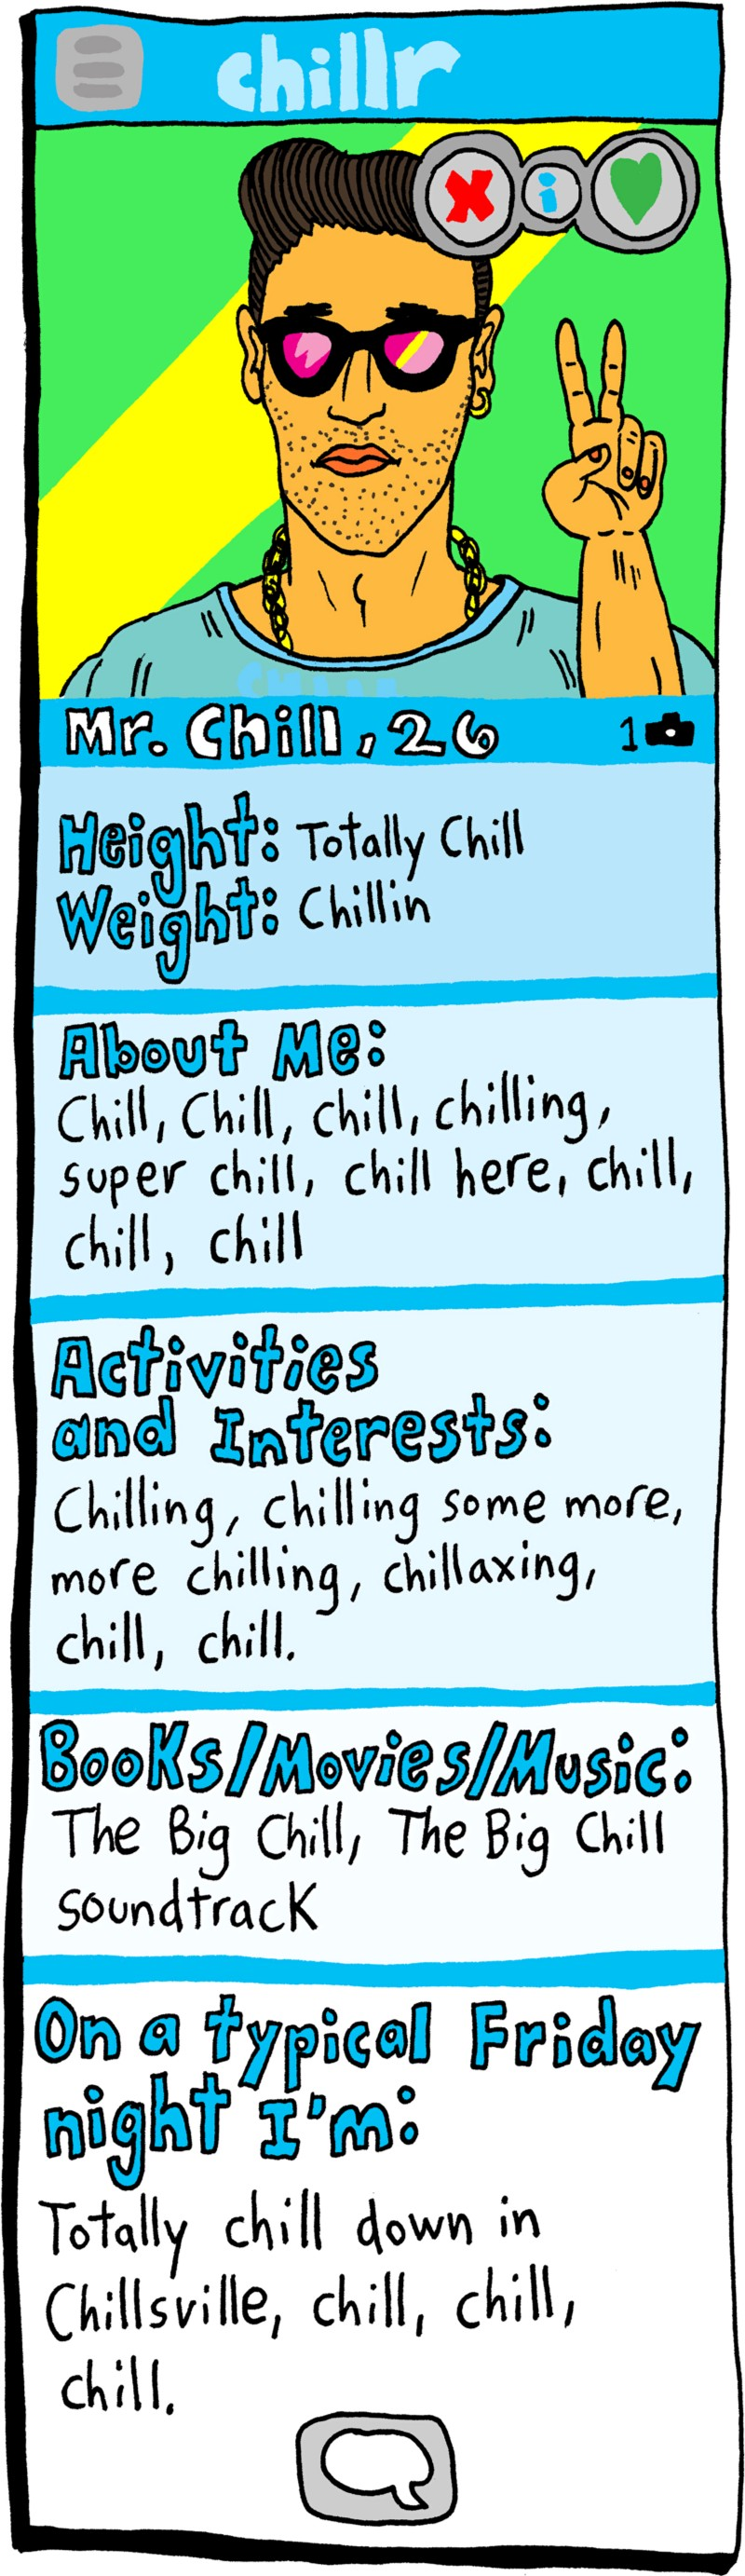 Against Chill